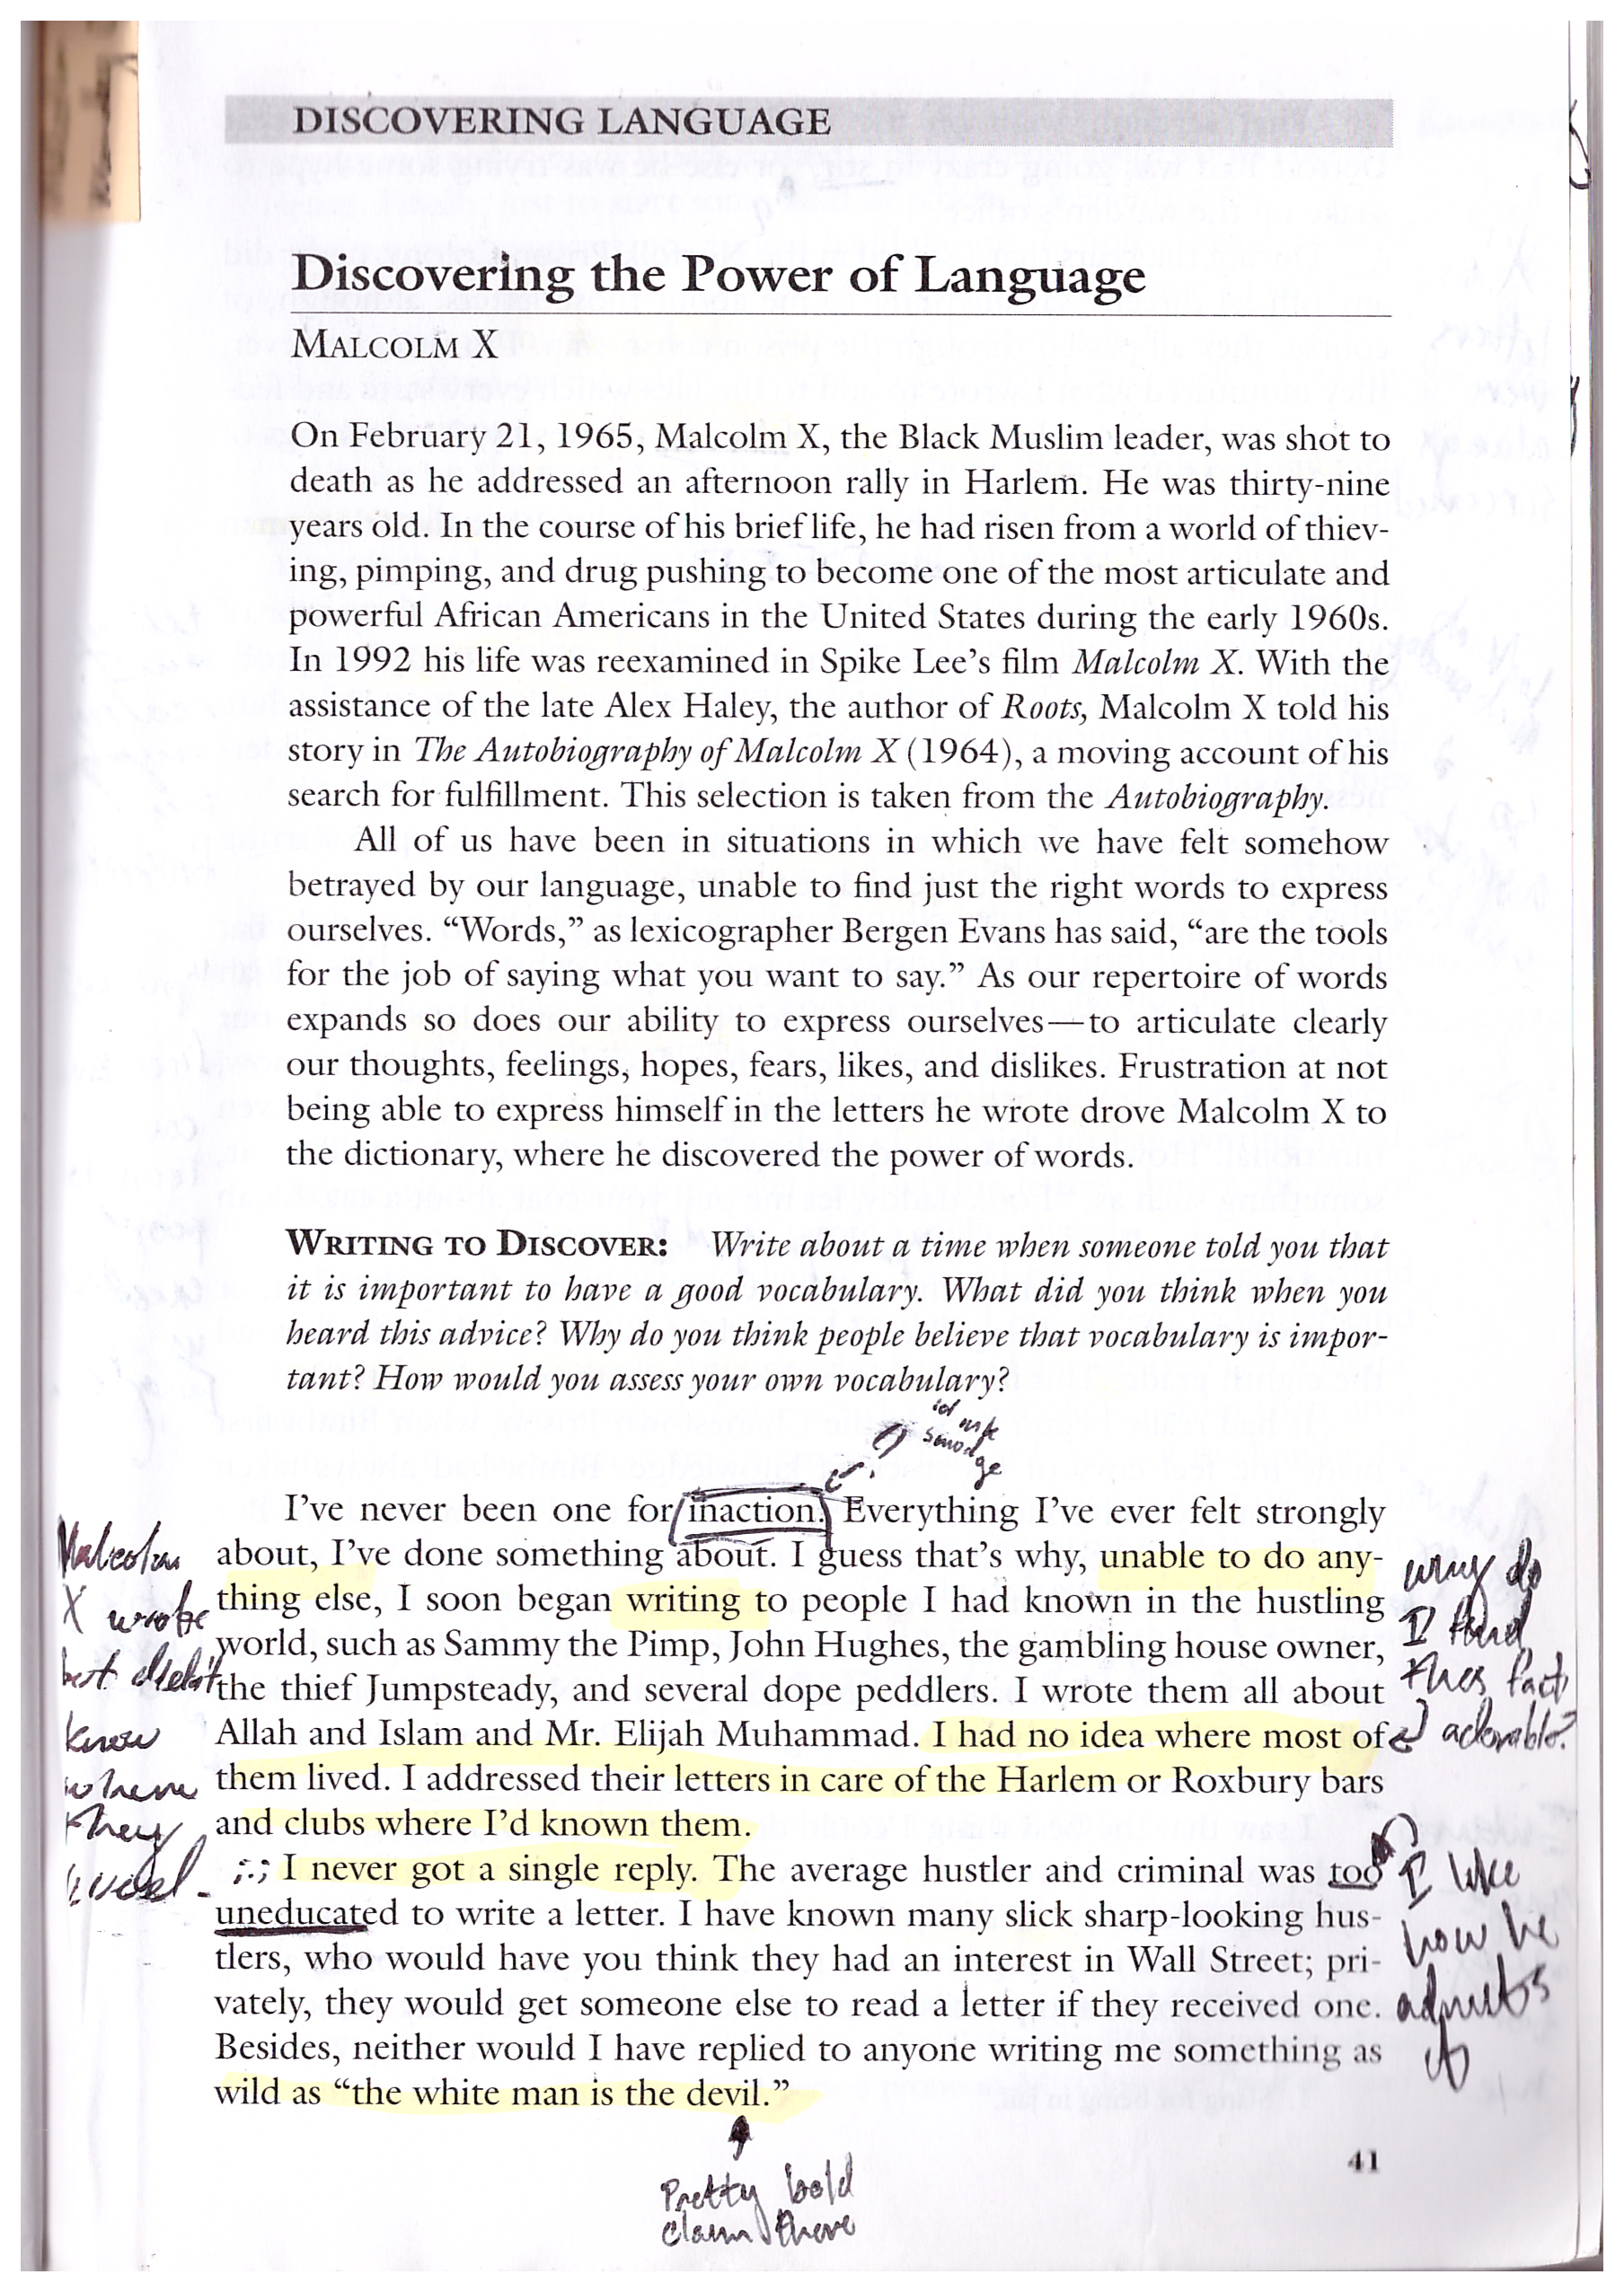 002 Malcolm X Essay Example Page Stunning Learning To Read Questions Summary Full